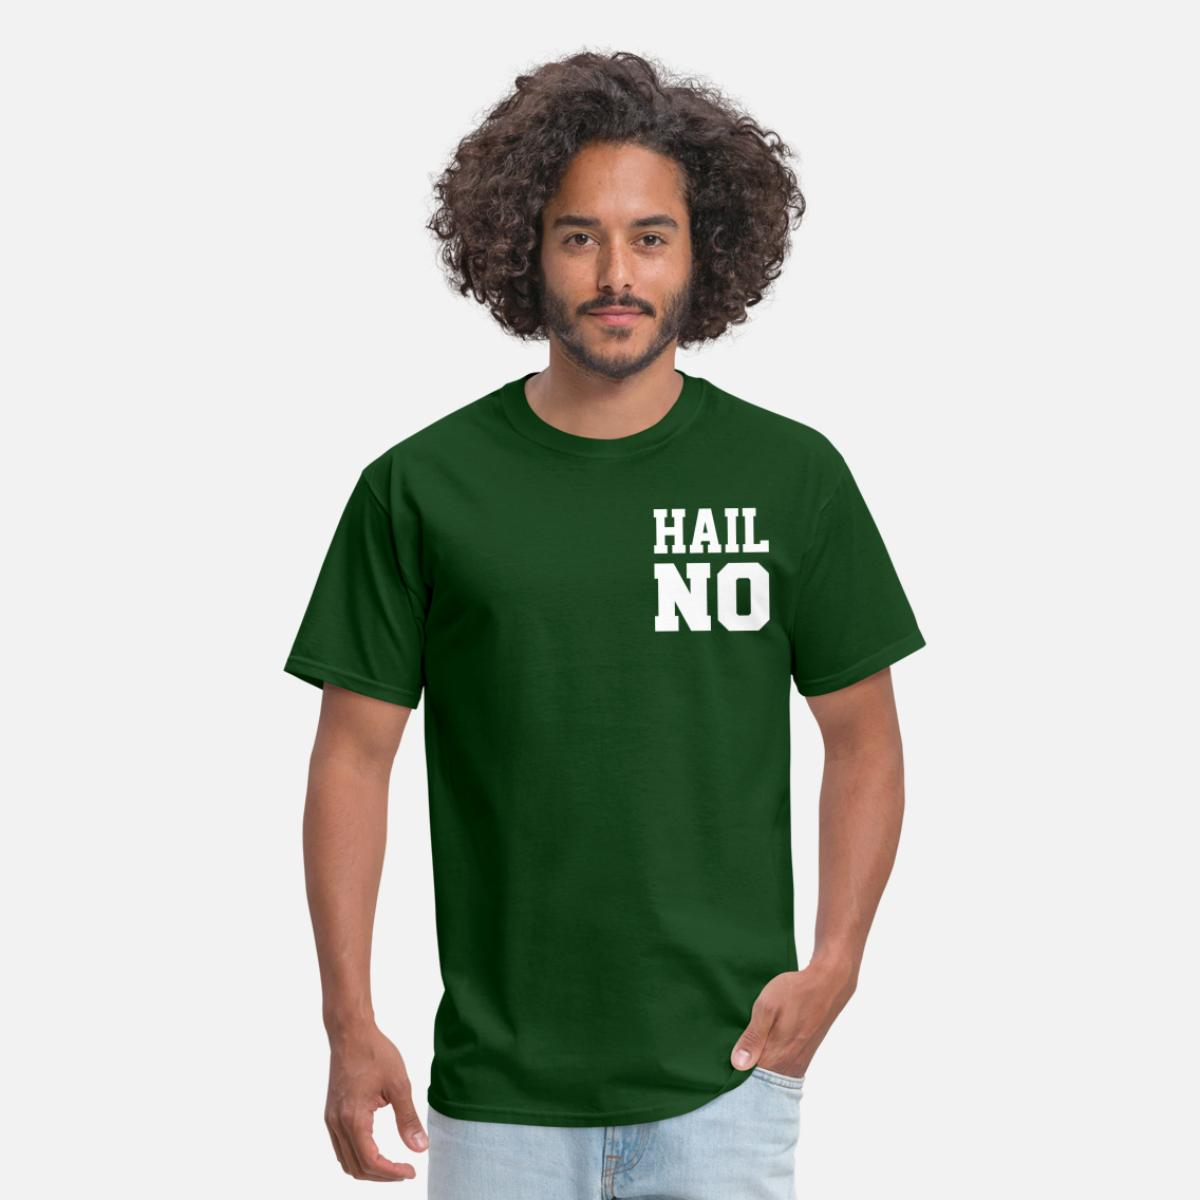 Skull in Hat Forest Green Adult Standard Weight T-Shirt for Men